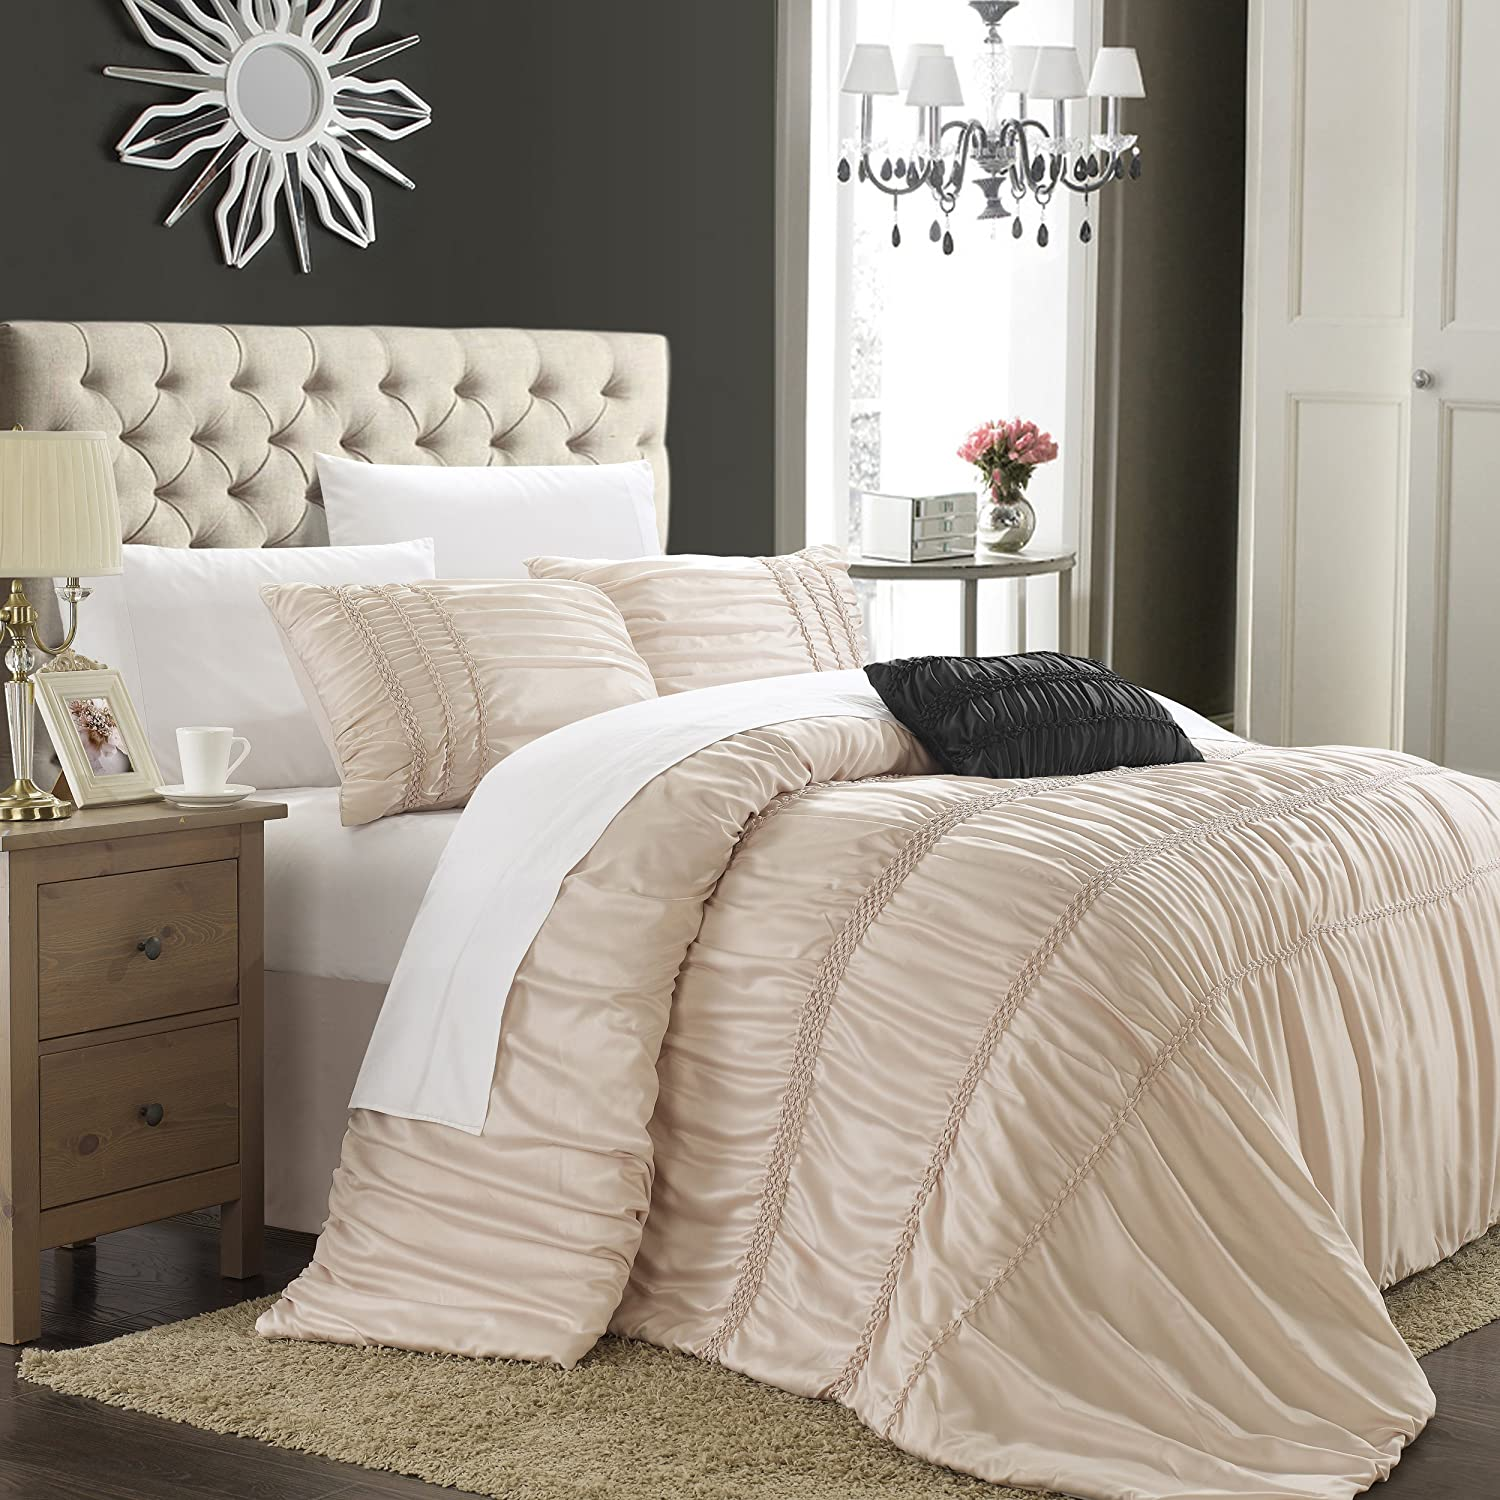 Chic Home Romantica 4-Piece Duvet Cover Set, King, Taupe